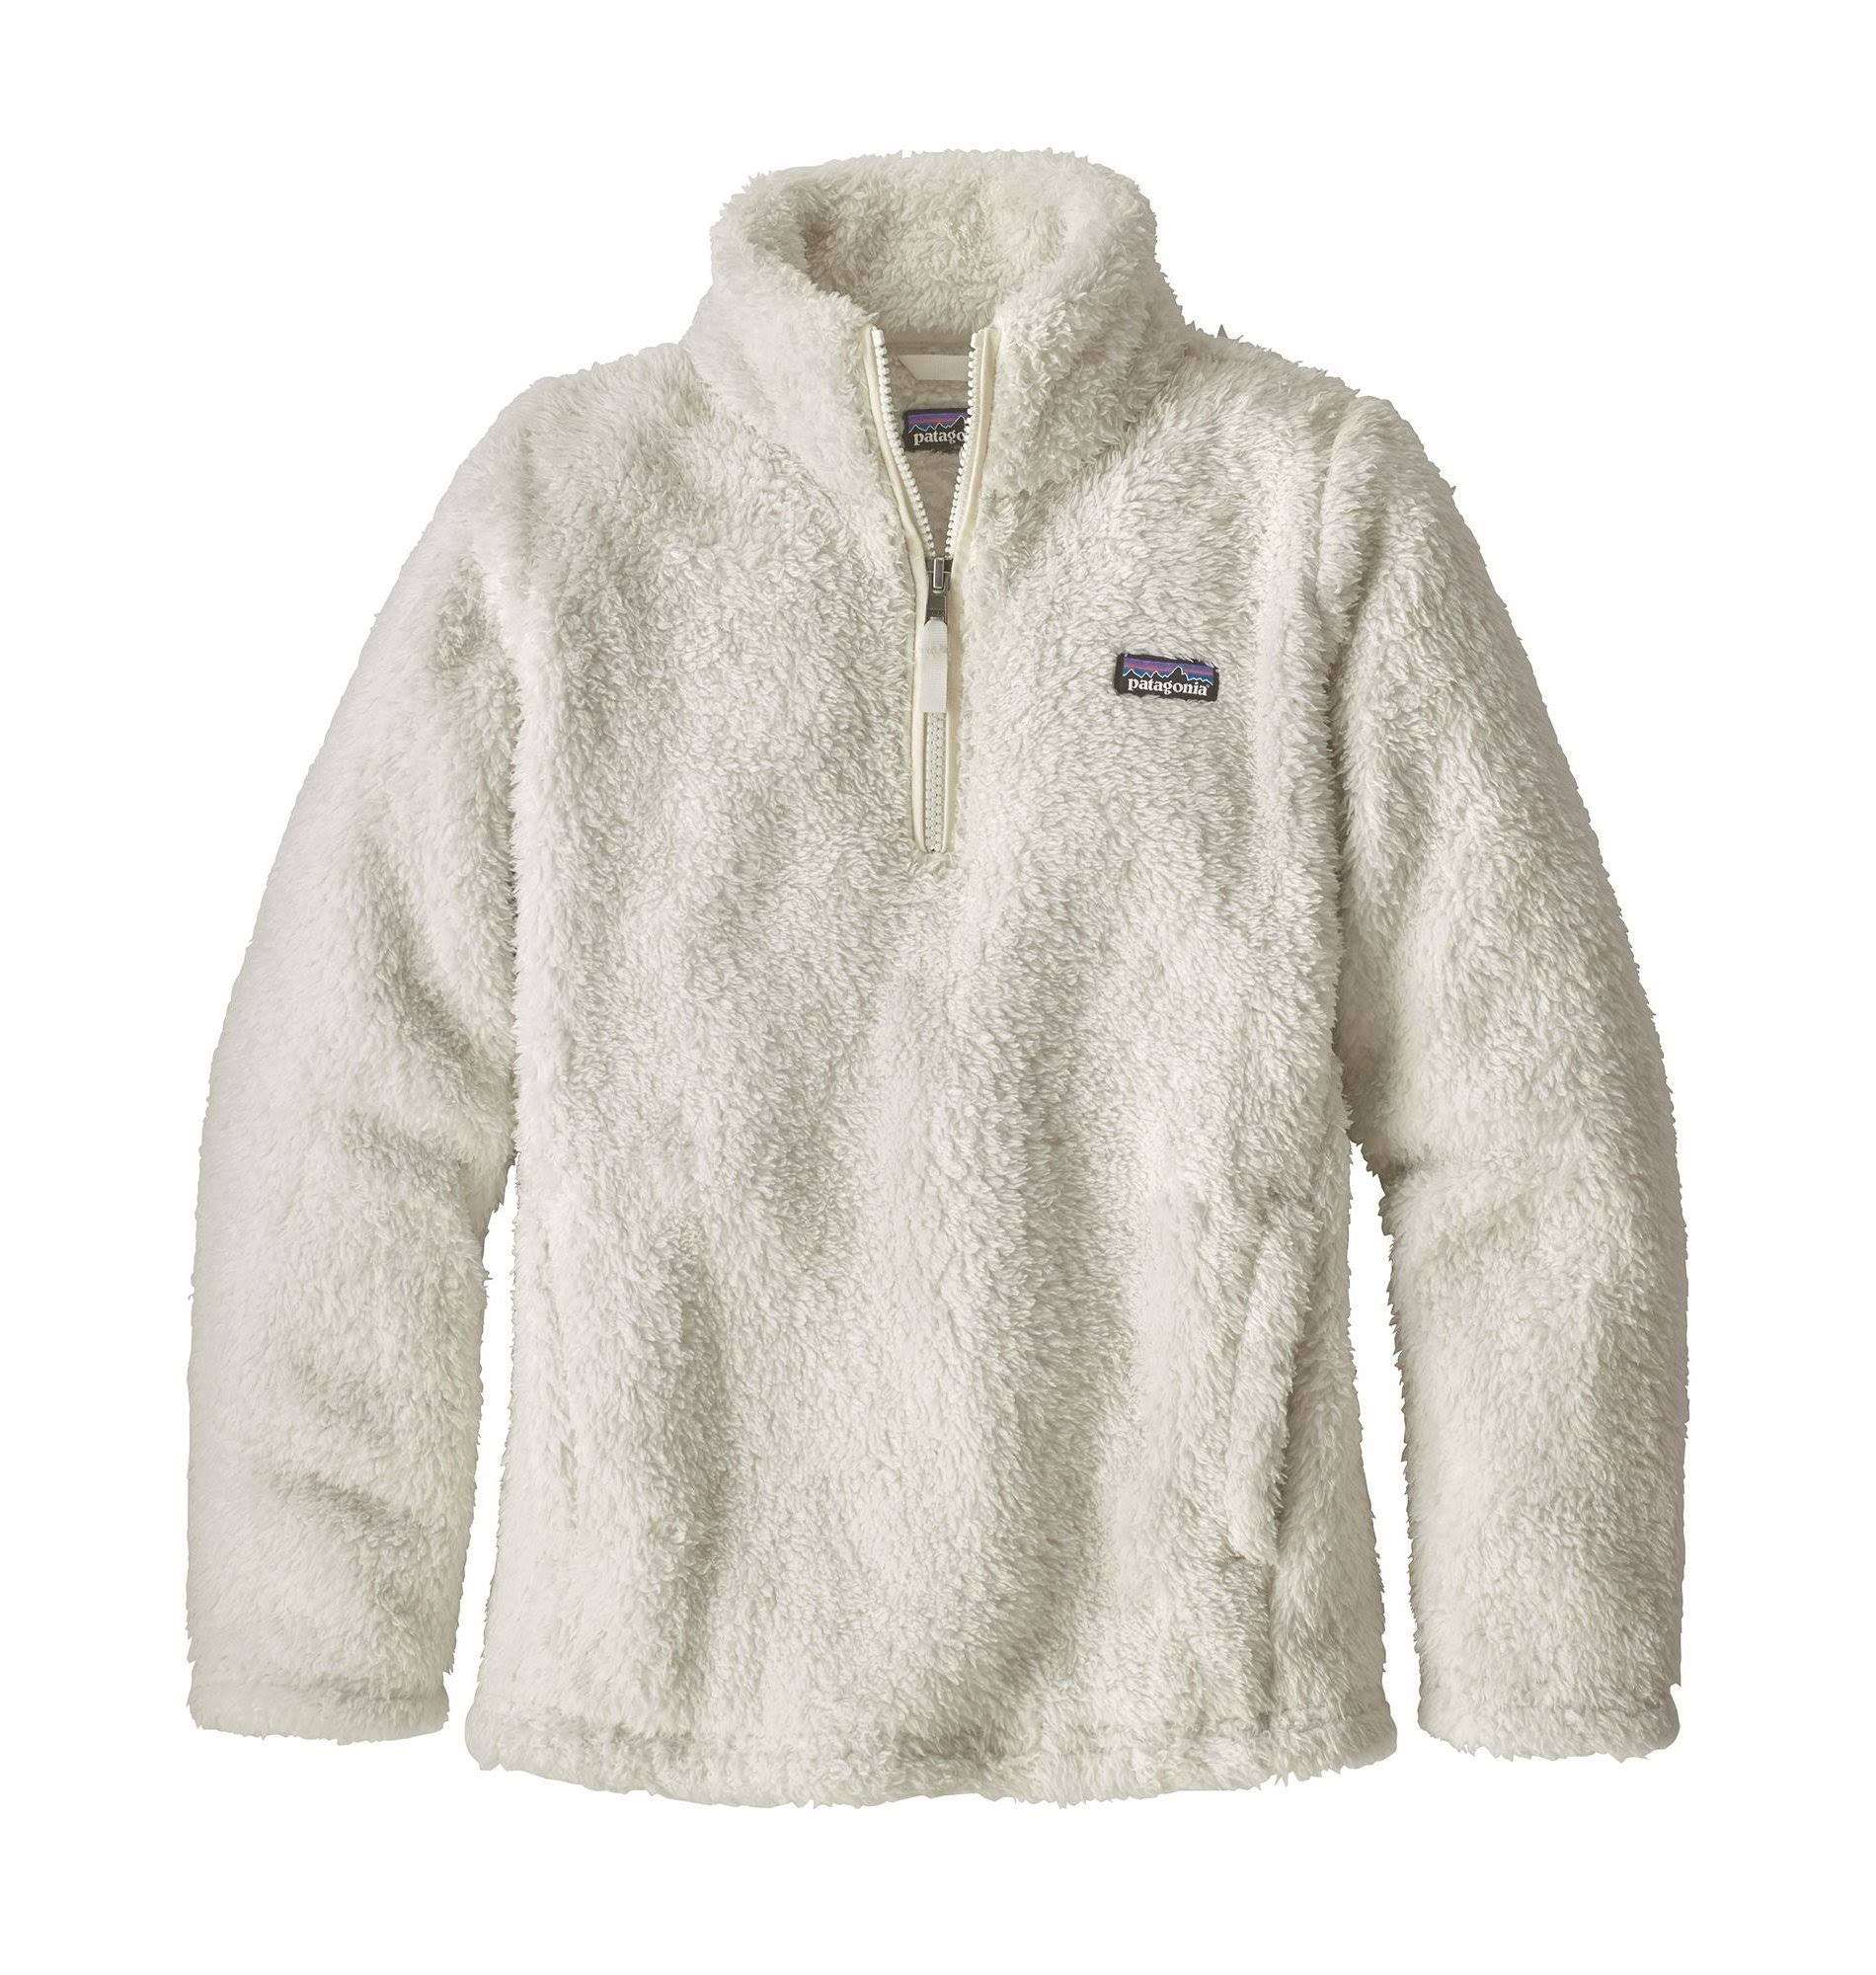 Girls Medium White 'birch Zip Patagonia 1 Los Gatos 4 fW68fTBqF